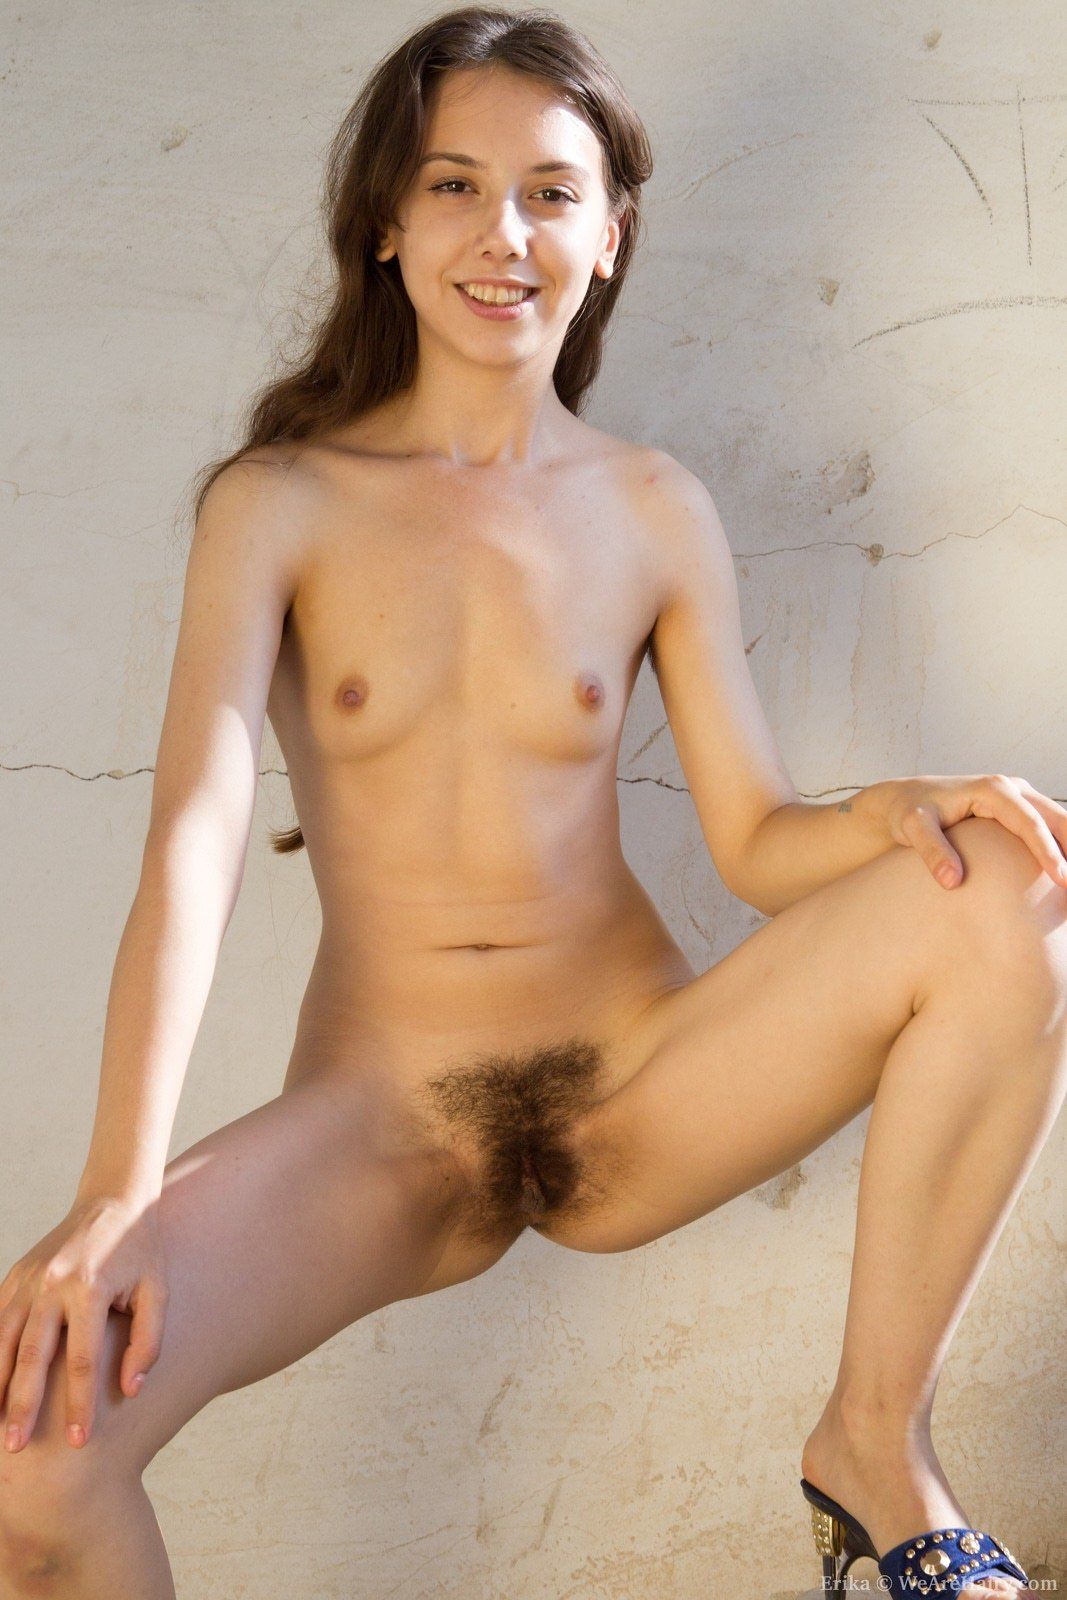 phrase... super, cutie rita falyotano caressing her tight shaved clit apologise, but